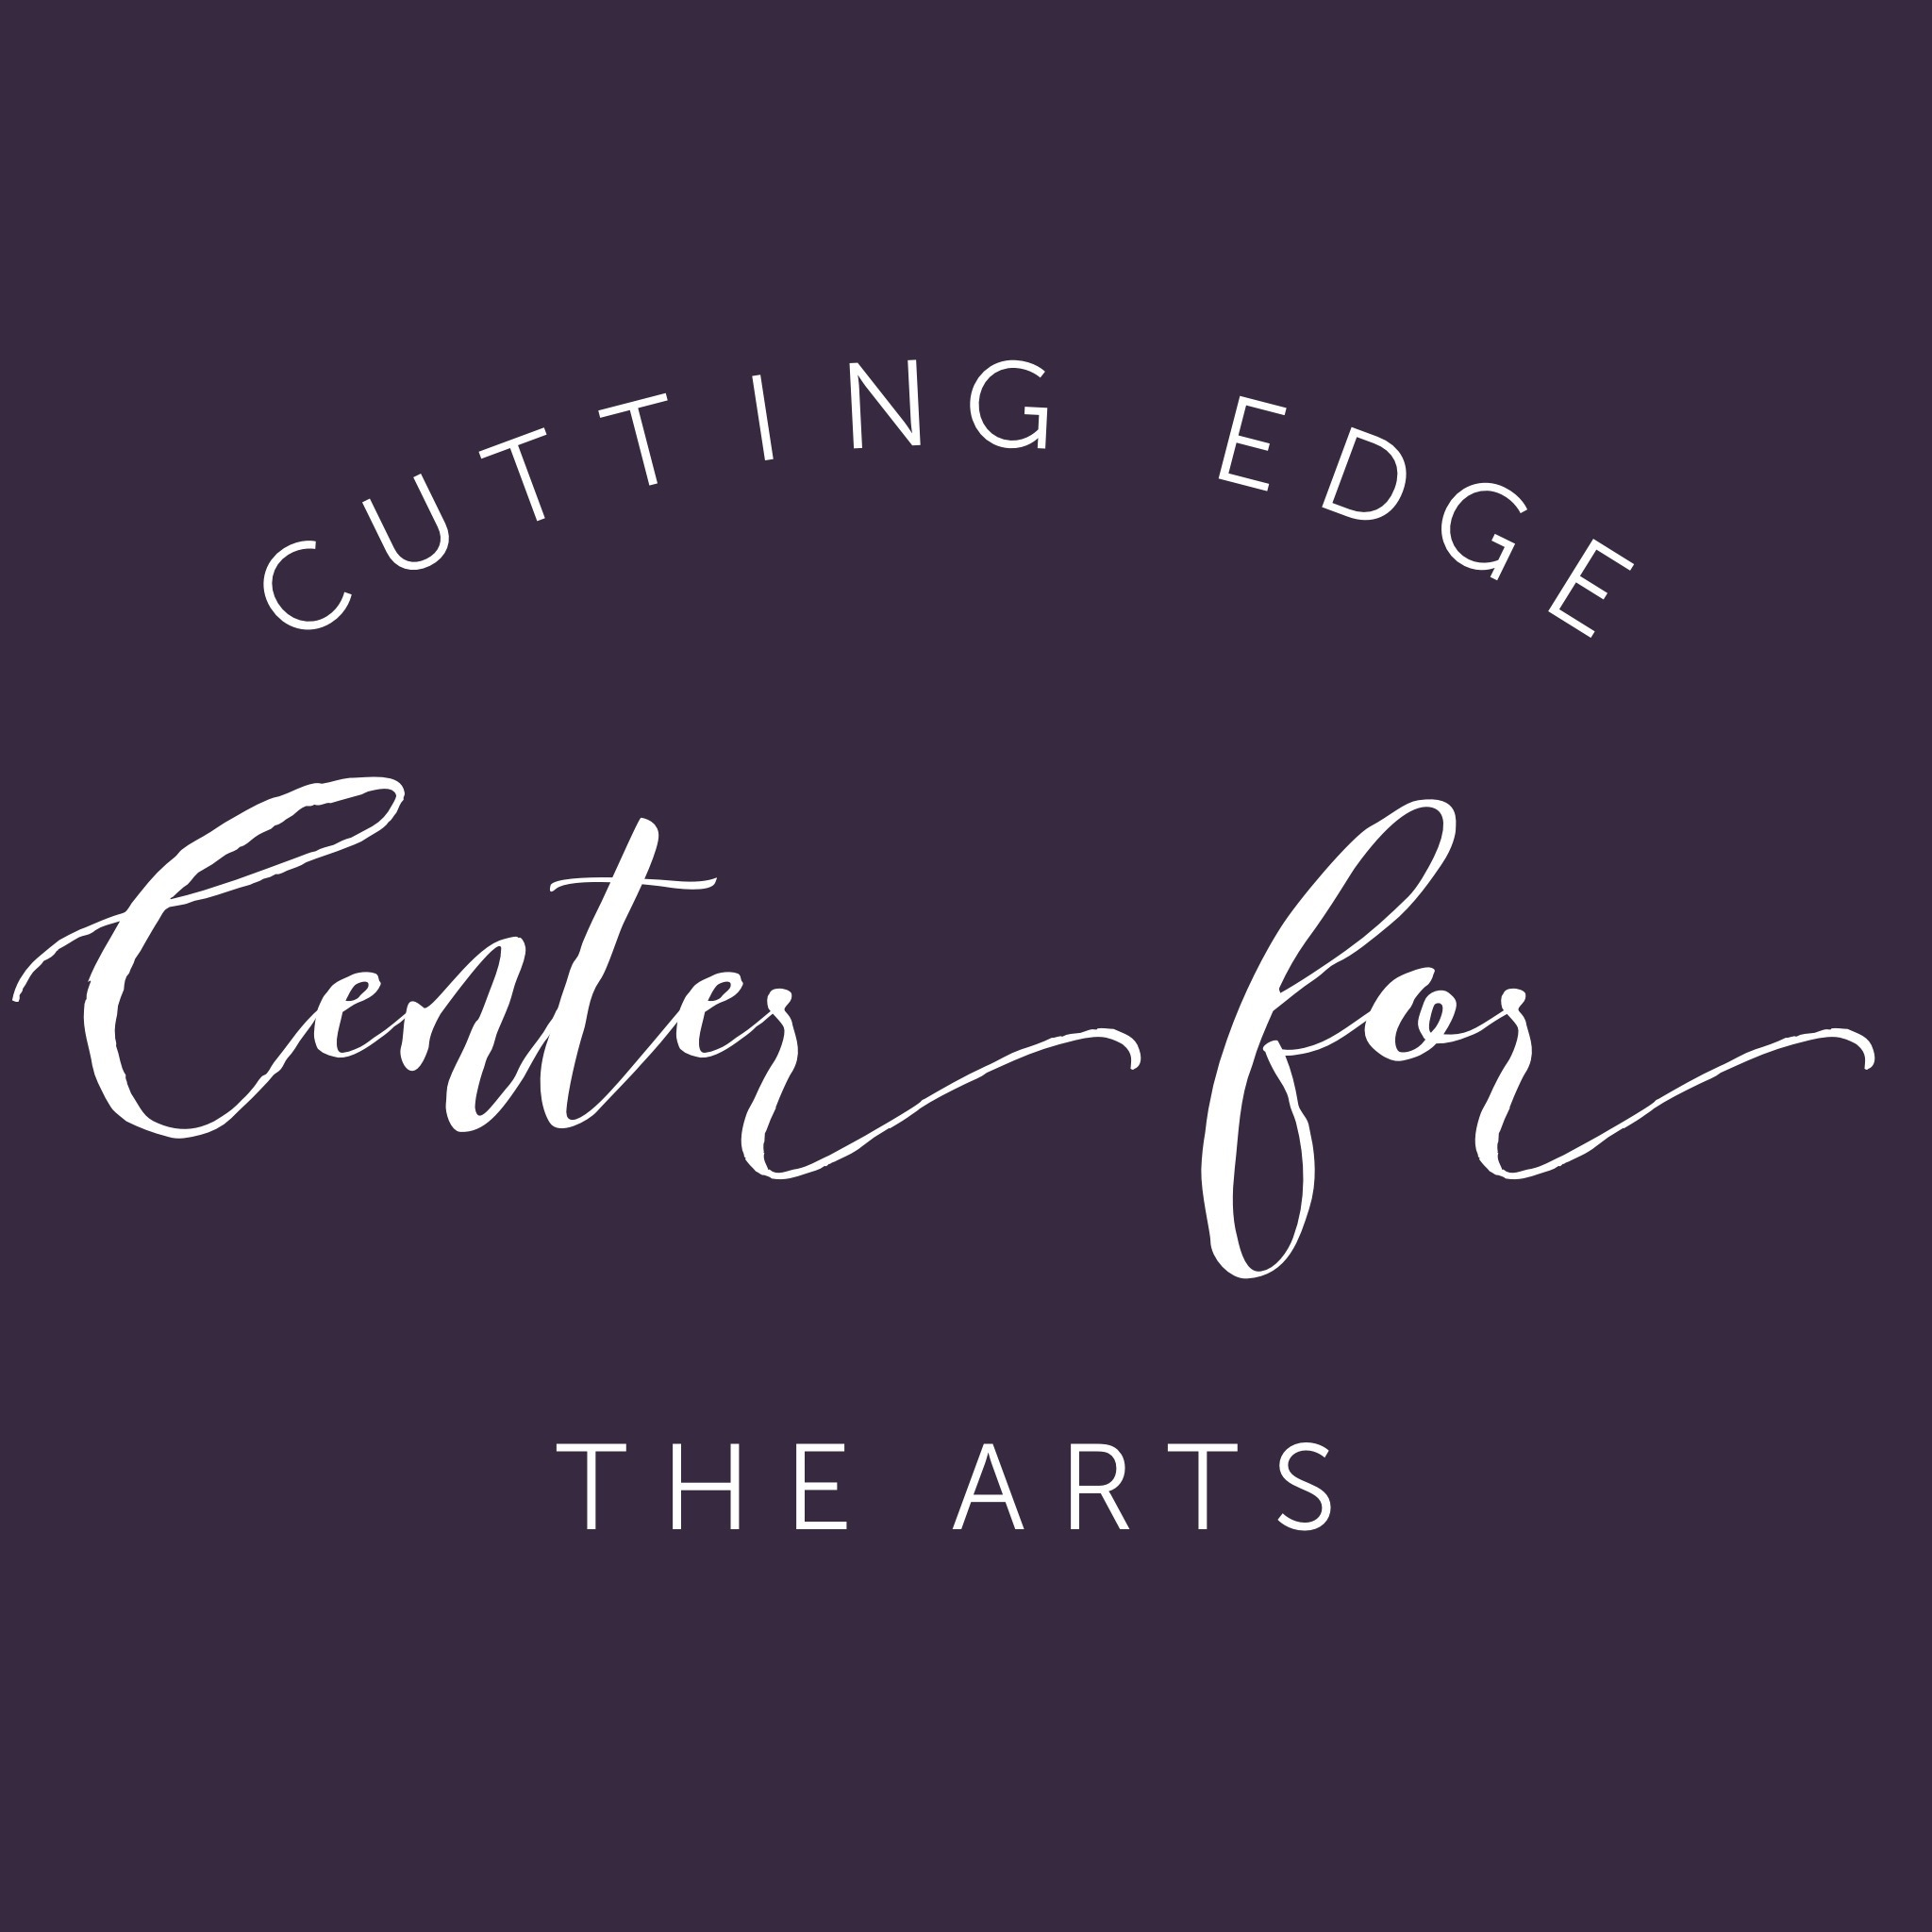 Cutting Edge Center for the Arts